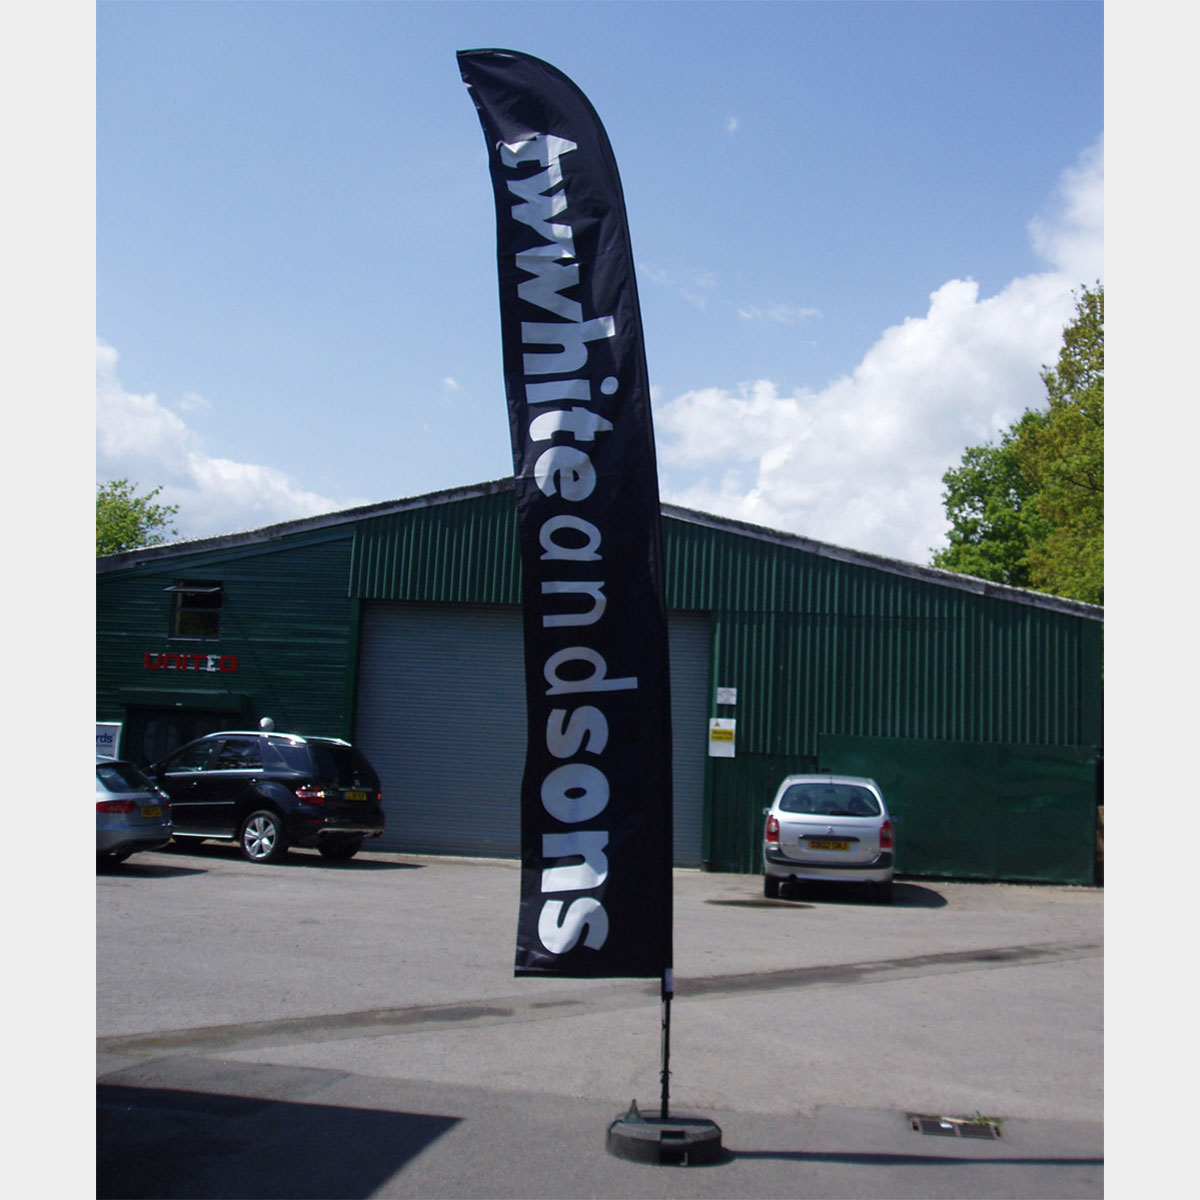 wing banners supersized sail banners. Black Bedroom Furniture Sets. Home Design Ideas